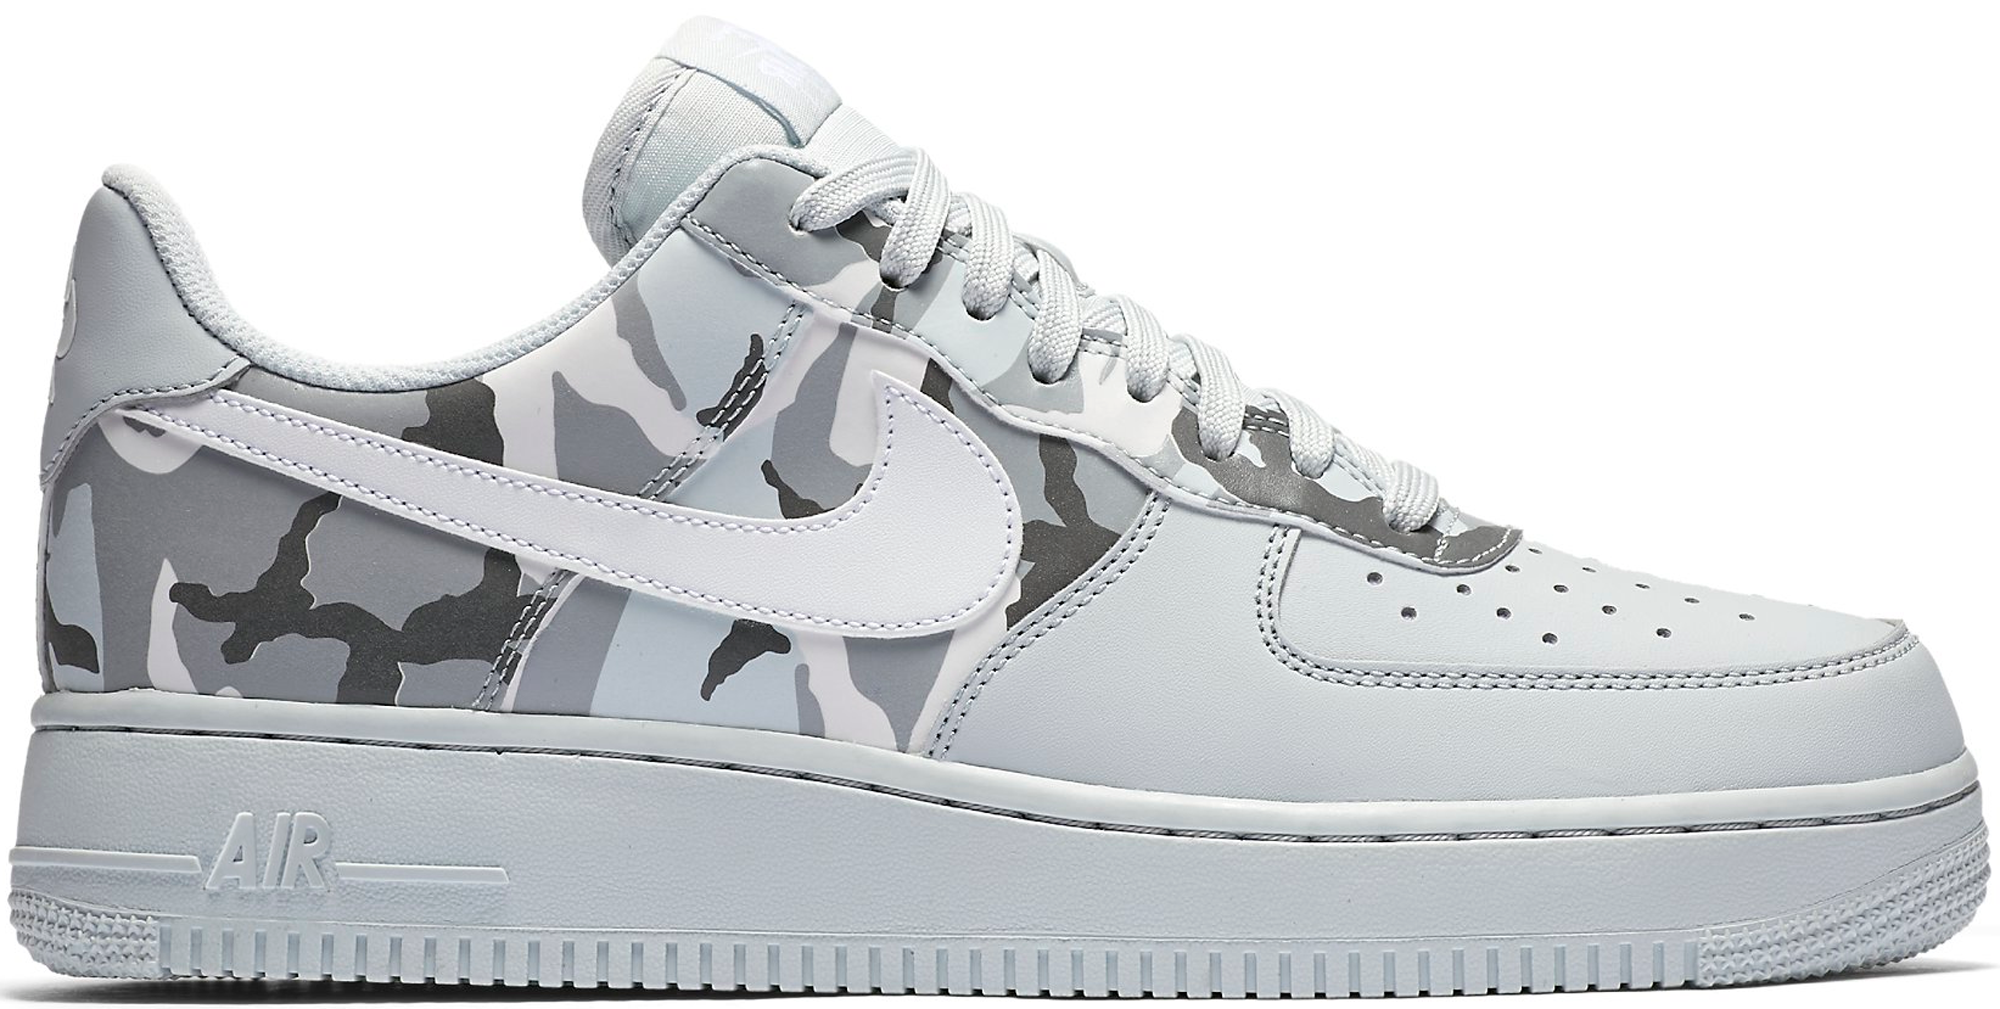 Nike Air Force 1 Blanc Faible Camouflage